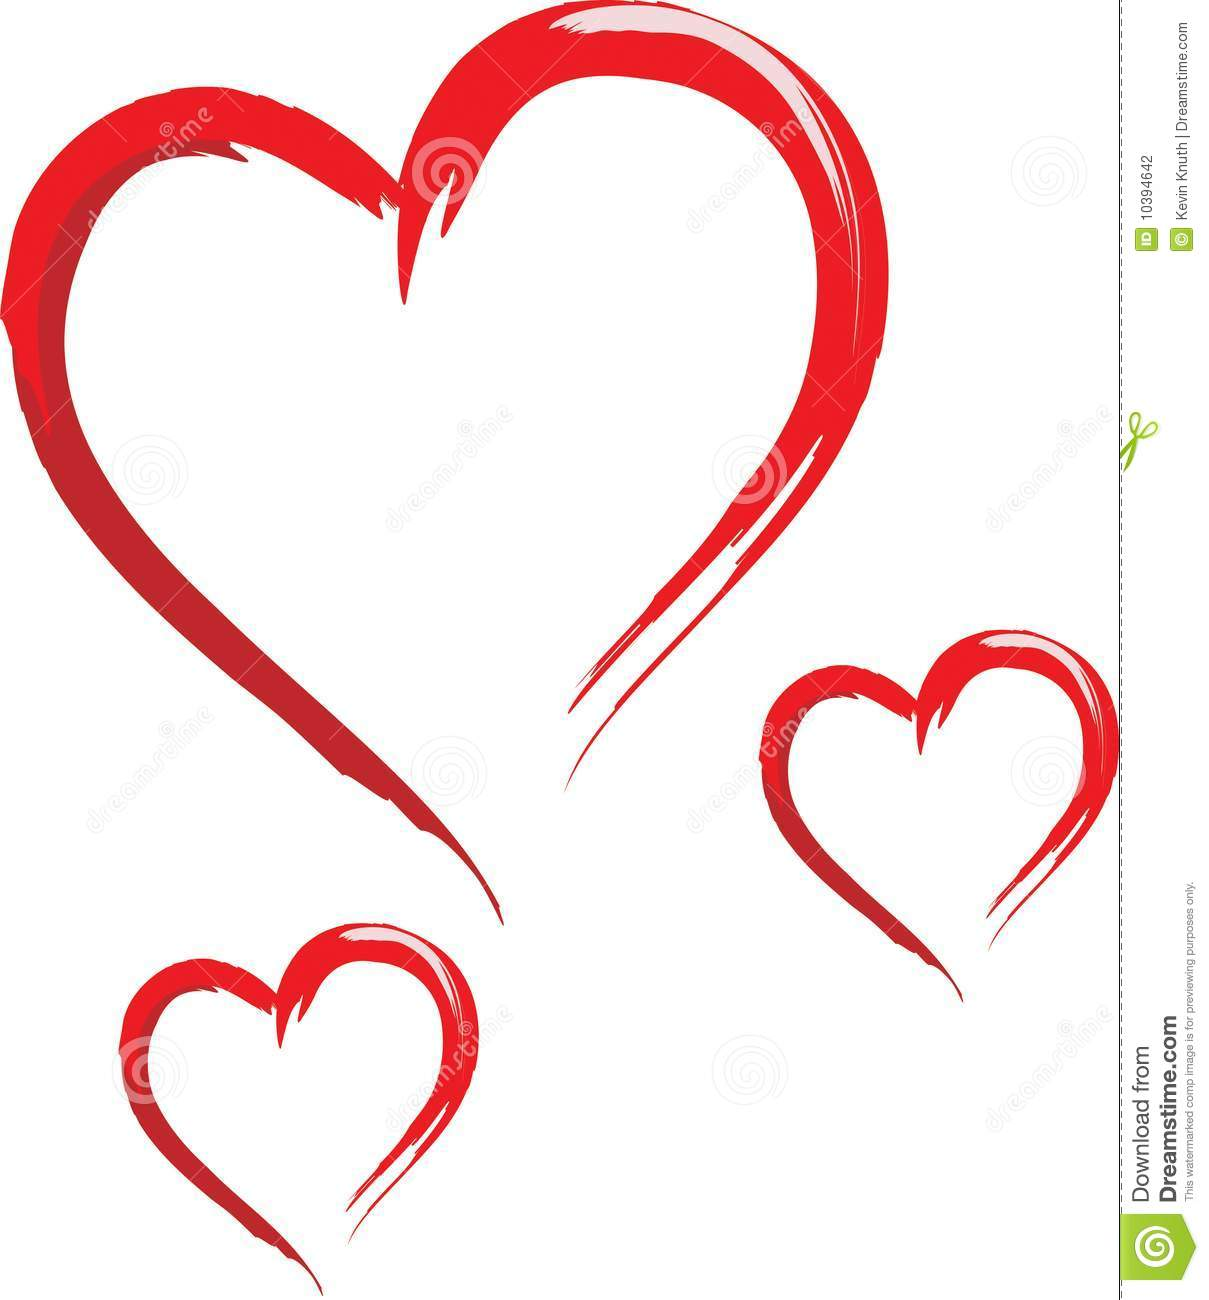 Three Sketched Hearts Stock Photography - Image: 10394642